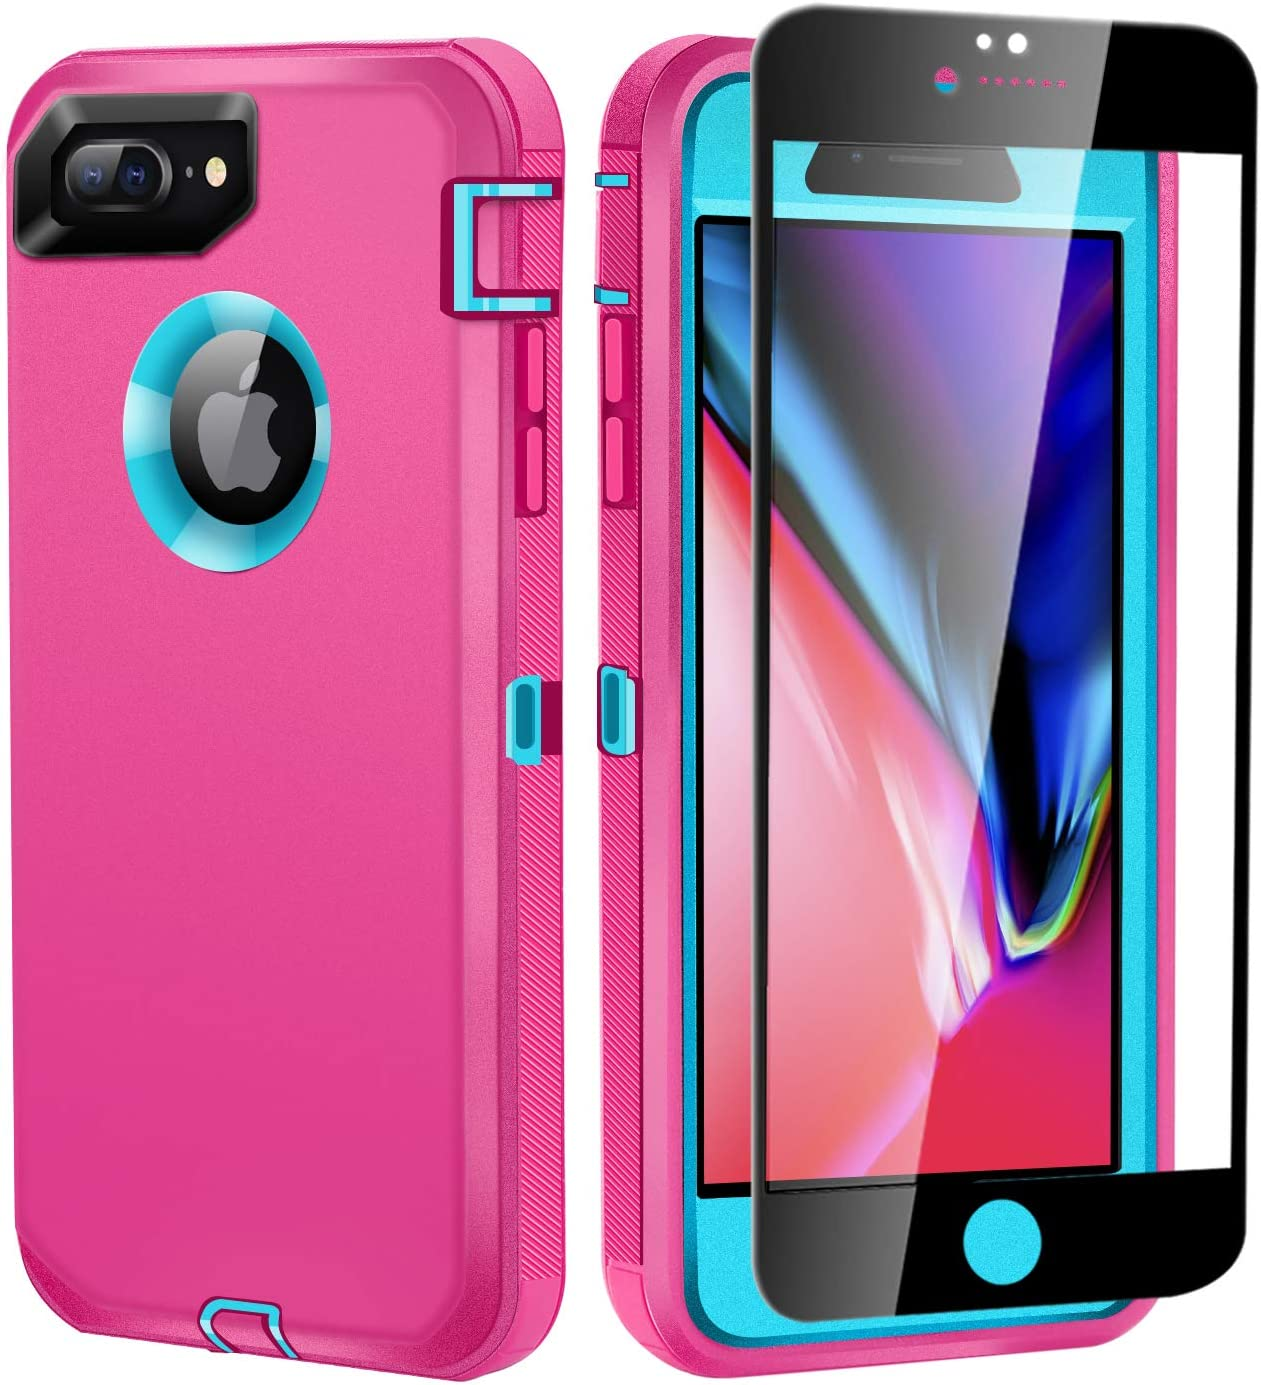 iPhone 8 Plus/7 Plus Phone Case with Screen Protector Tempered Glass, Heavy Duty Full Body Protective Rugged Anti-Slip Shockproof Drop-Proof Cover for Apple iPhone 8+/7+, 5.5